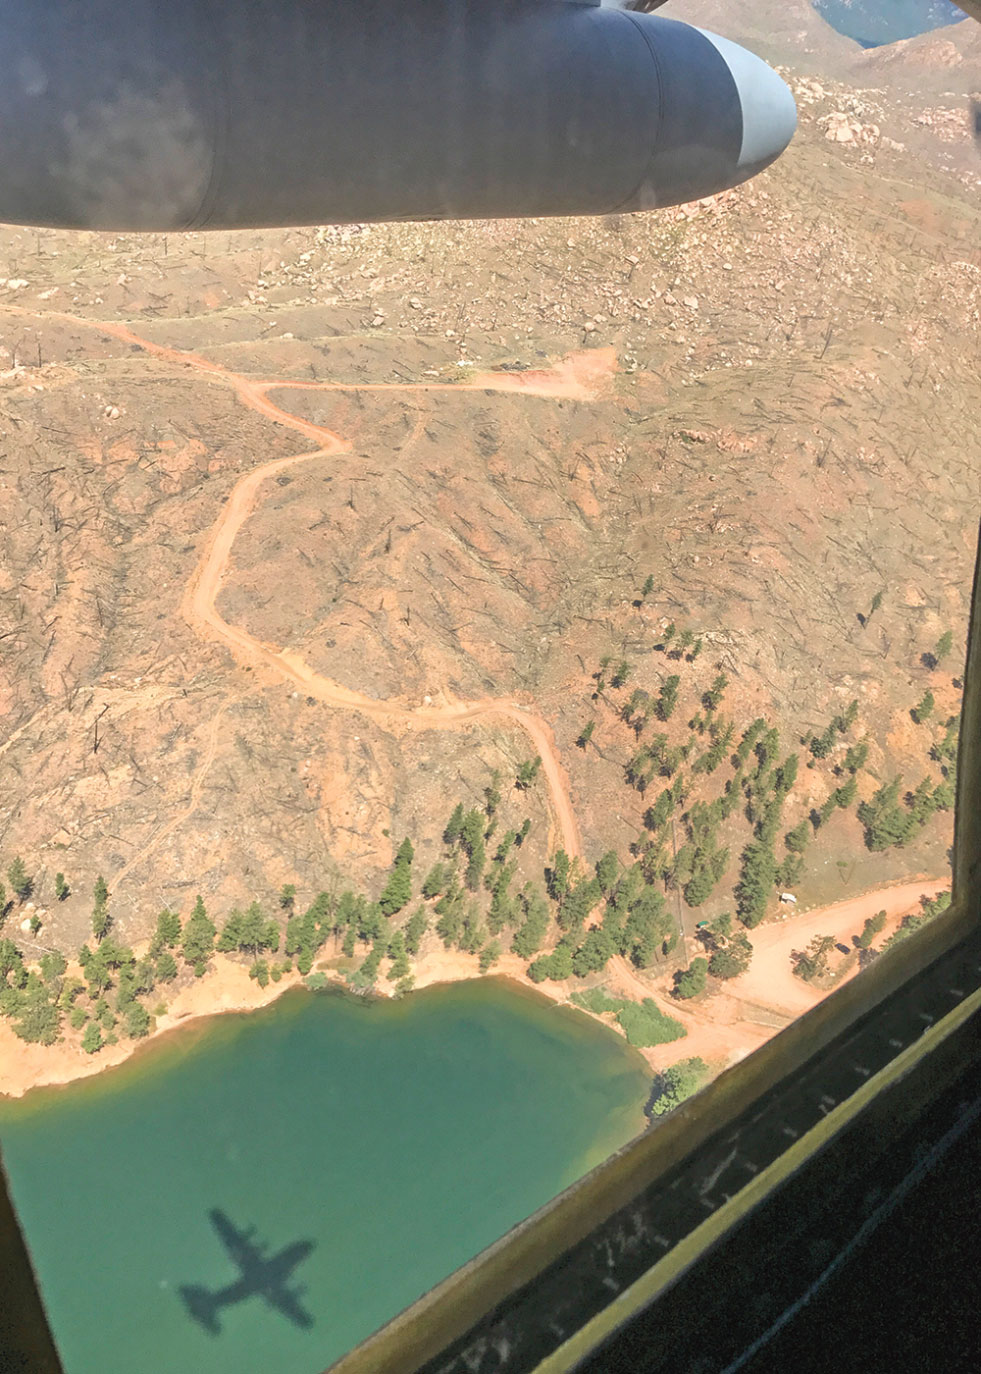 (Courtesy photo by 1st Lt. Will Jones) Colorado Rockies, Colo. — The shadow of a C-130H Hercules is seen over a lake in the Colorado Rockies July 28, 2017. Two Hercules from the 94th Airlift Wing, Dobbins Air Reserve Base, Ga. participated in high-altitude airdrops alongside other Air Force Reserve C-130 wings as part of a training exercise.